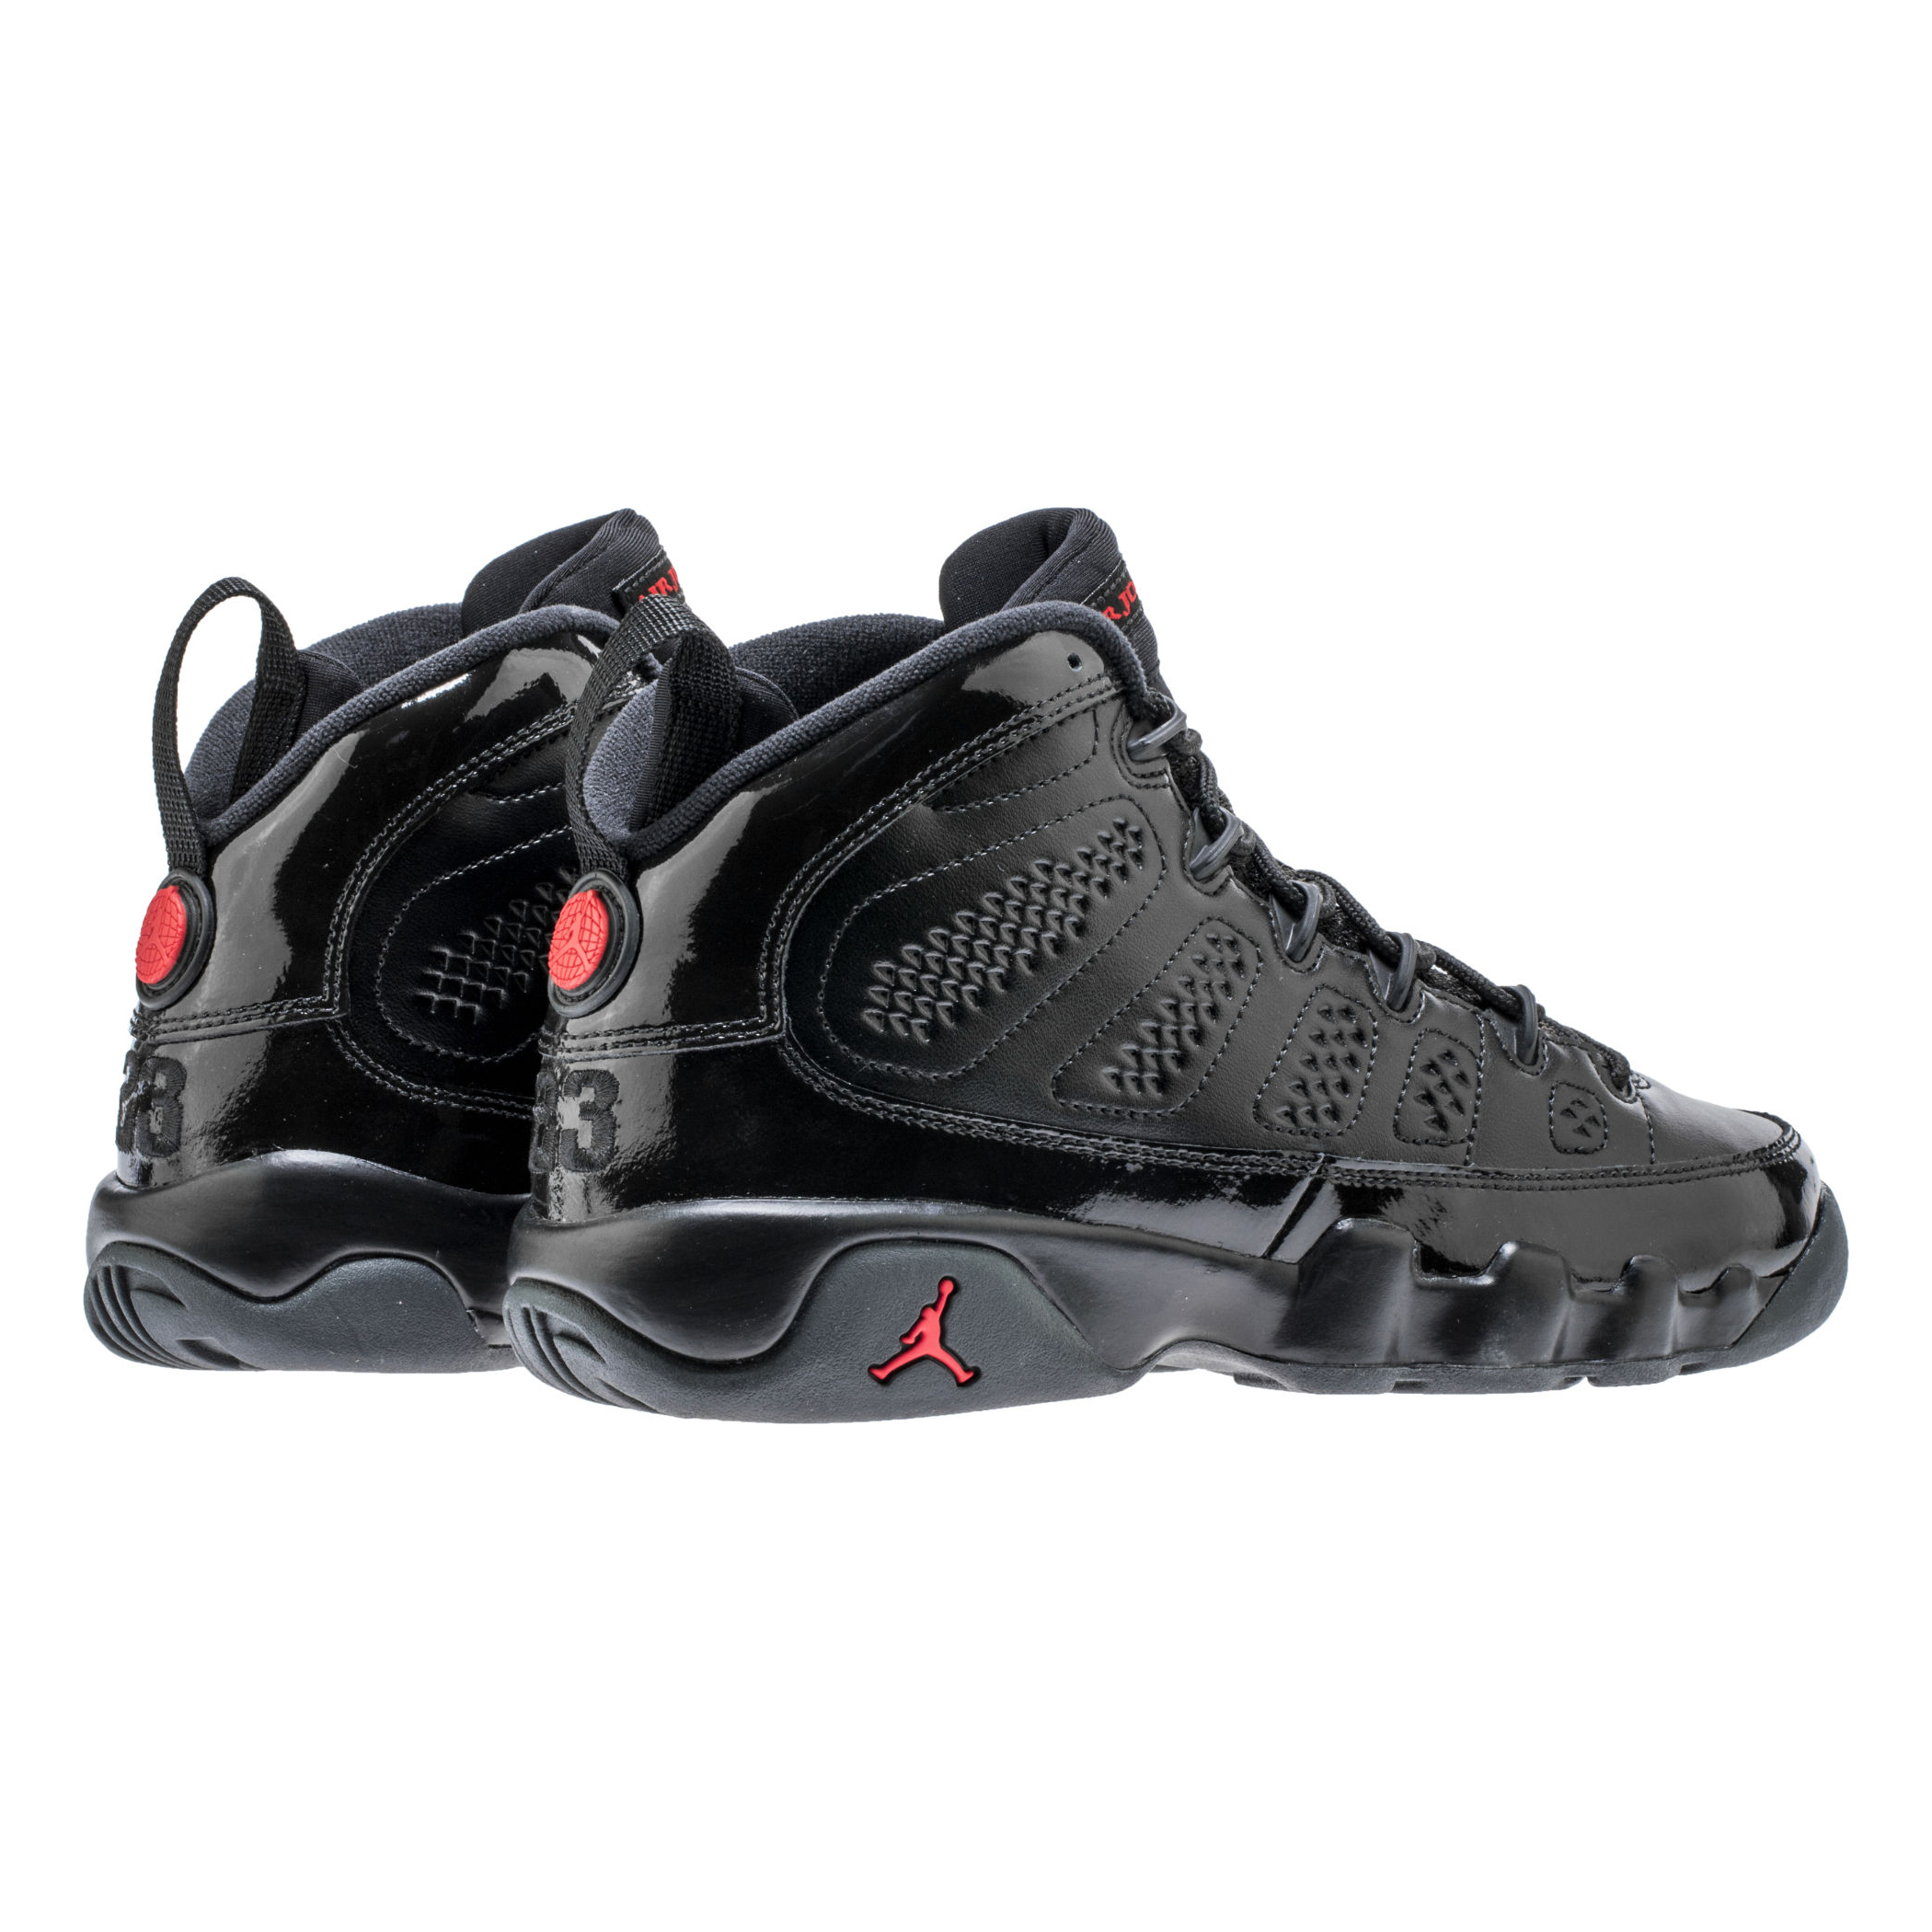 The Air Jordan 9 in Black/University Red Drops for March ...Jordan 9 Black And Red And Silver